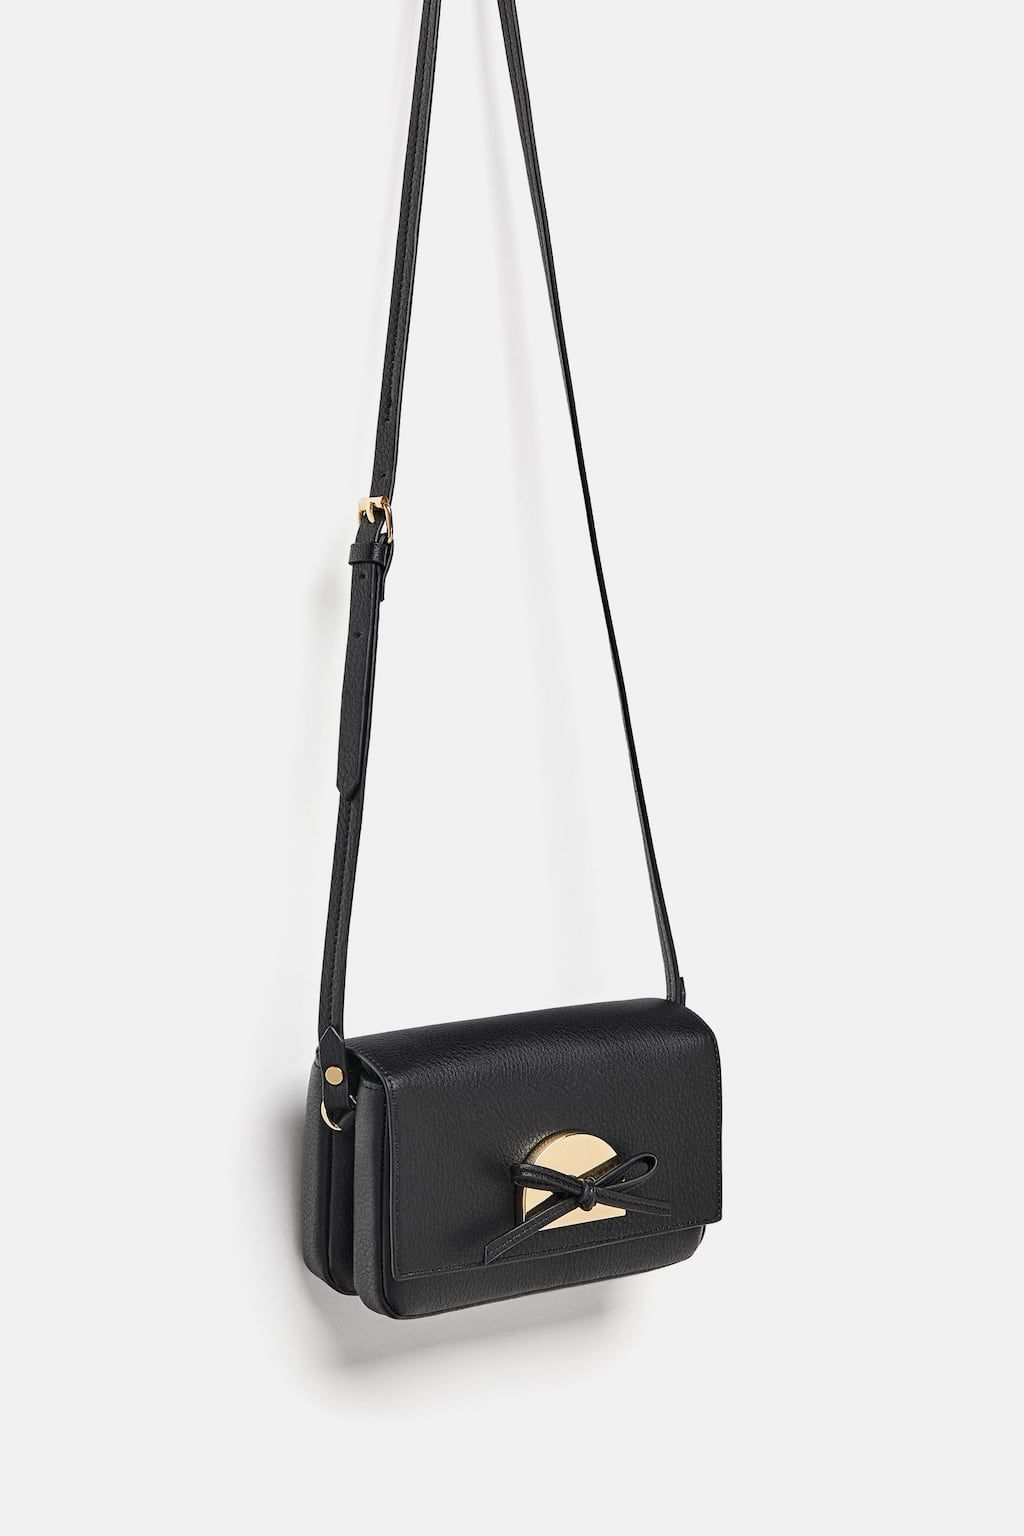 6d2dddfc31 Image 3 of MINI CROSSBODY BAG WITH TIE from Zara